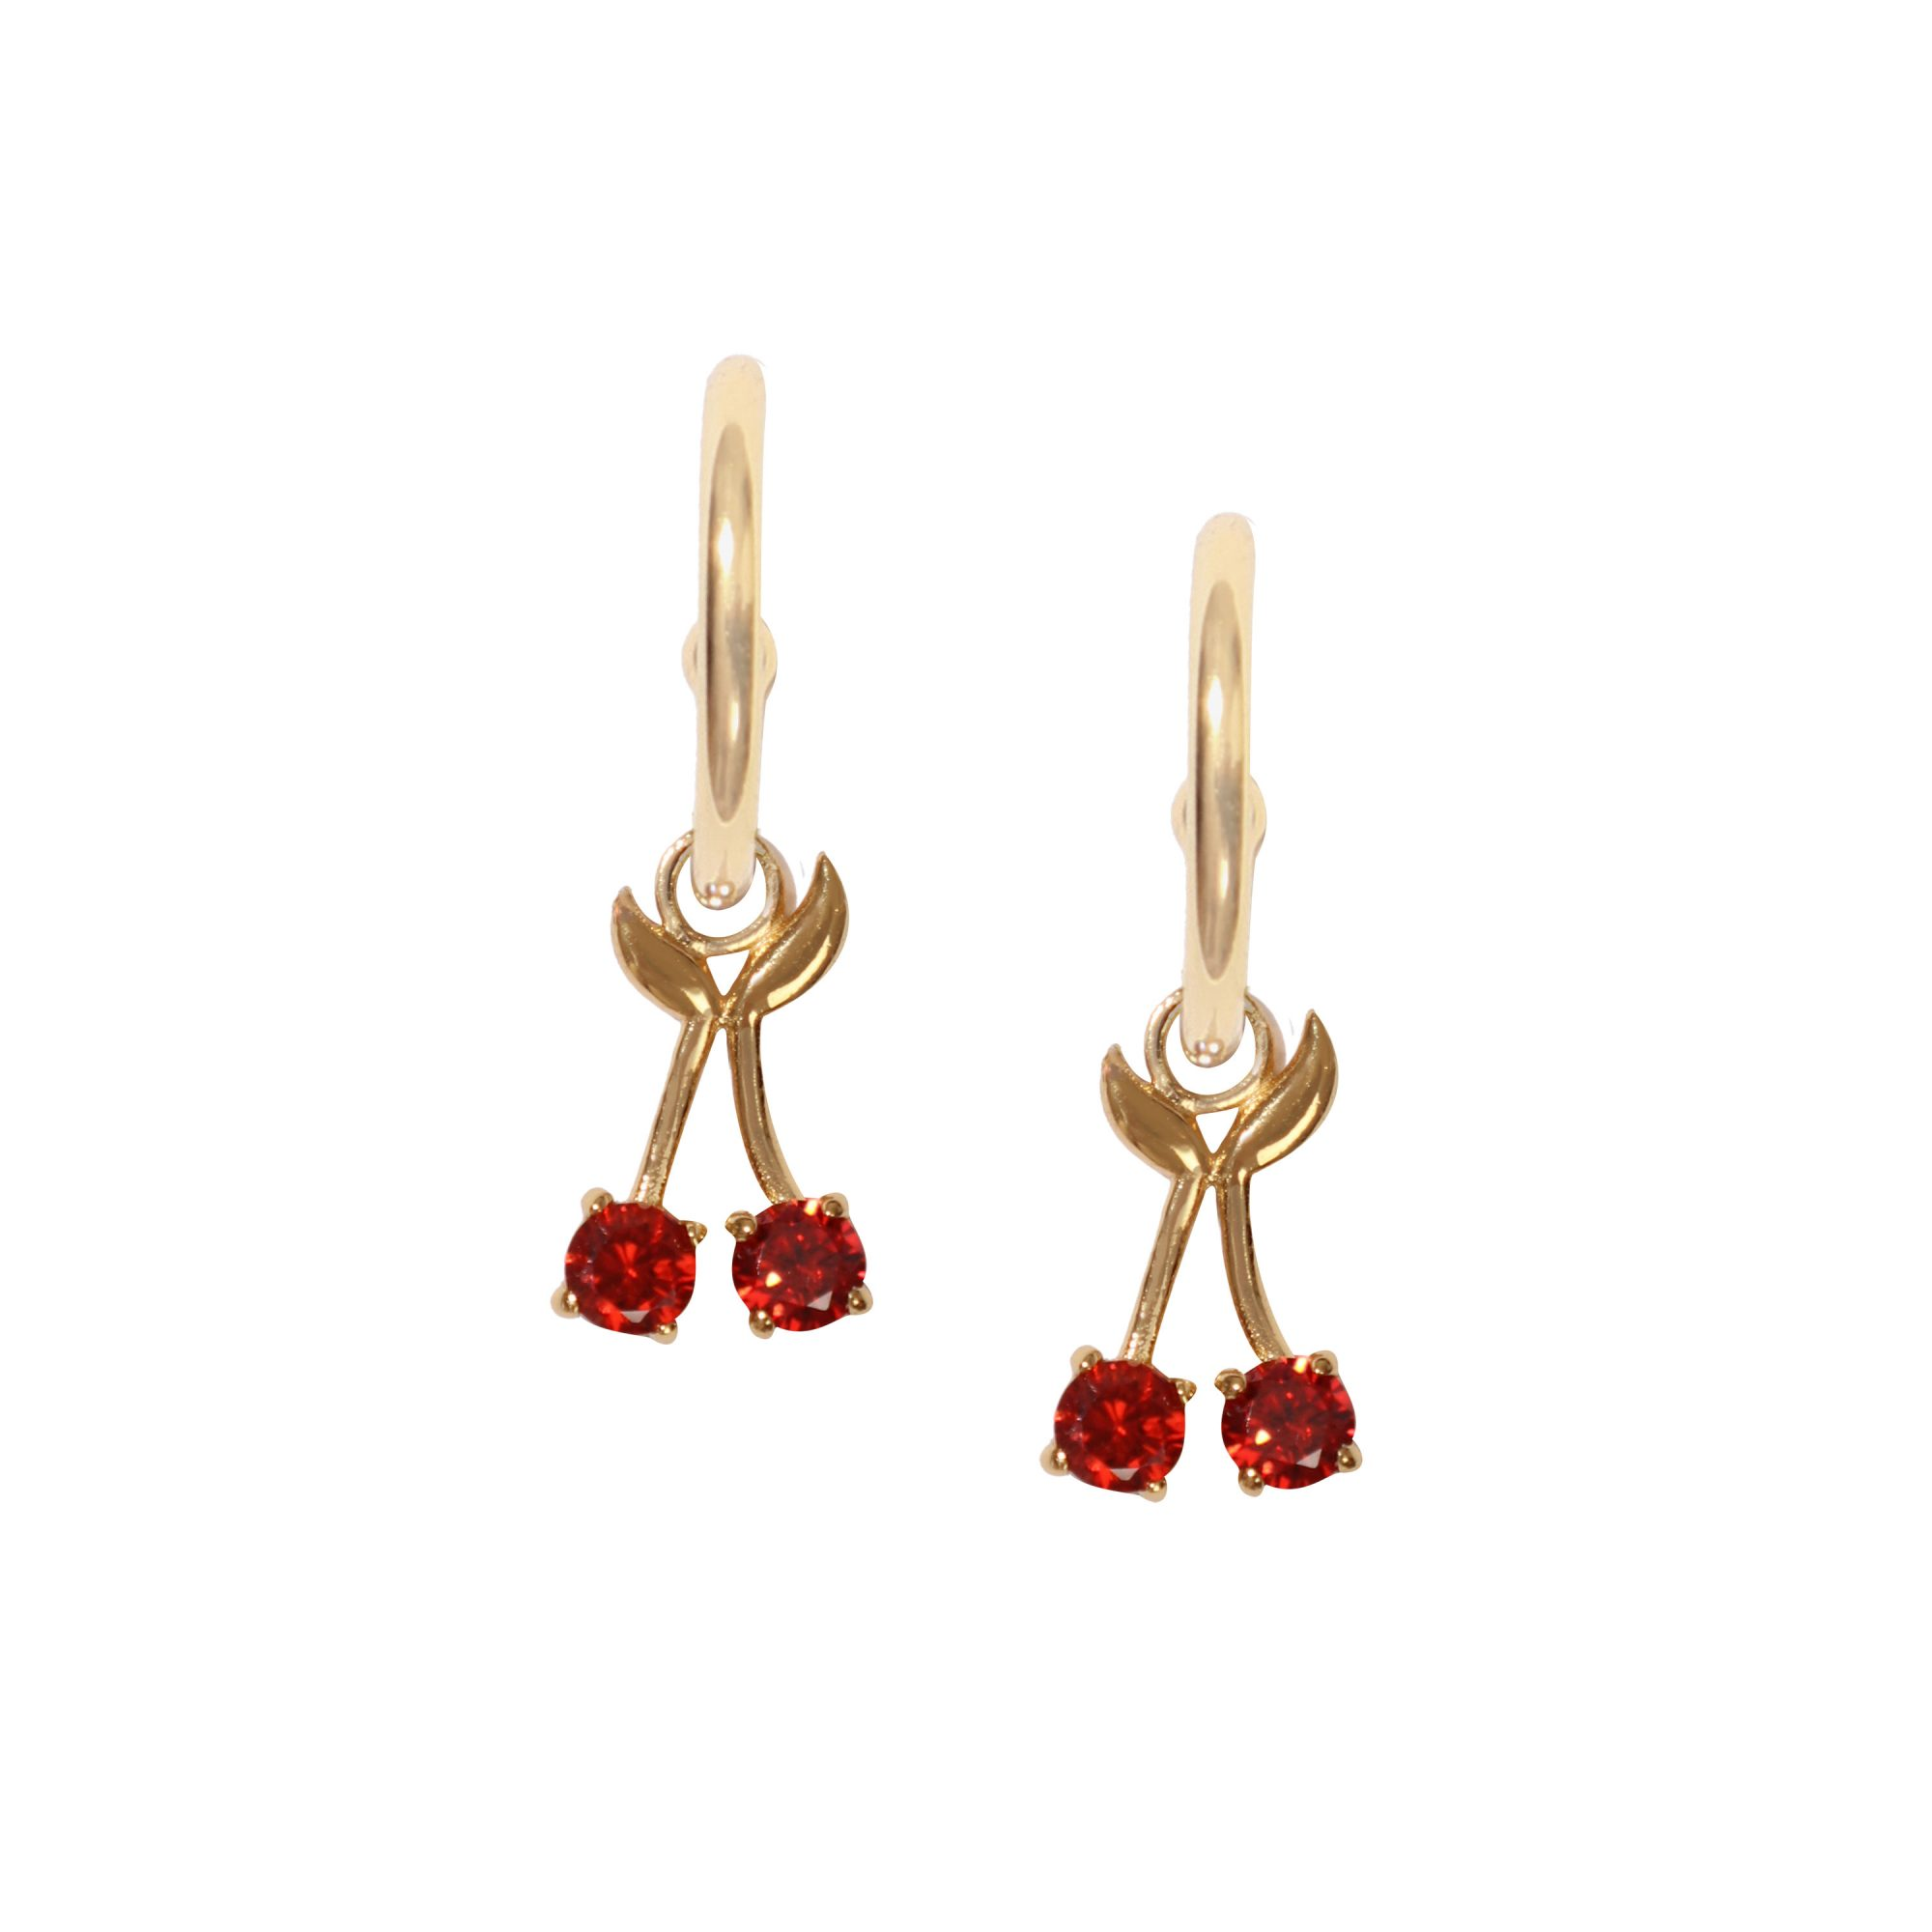 Adornmonde Manny Gold 925 Silver Cherry Earrings